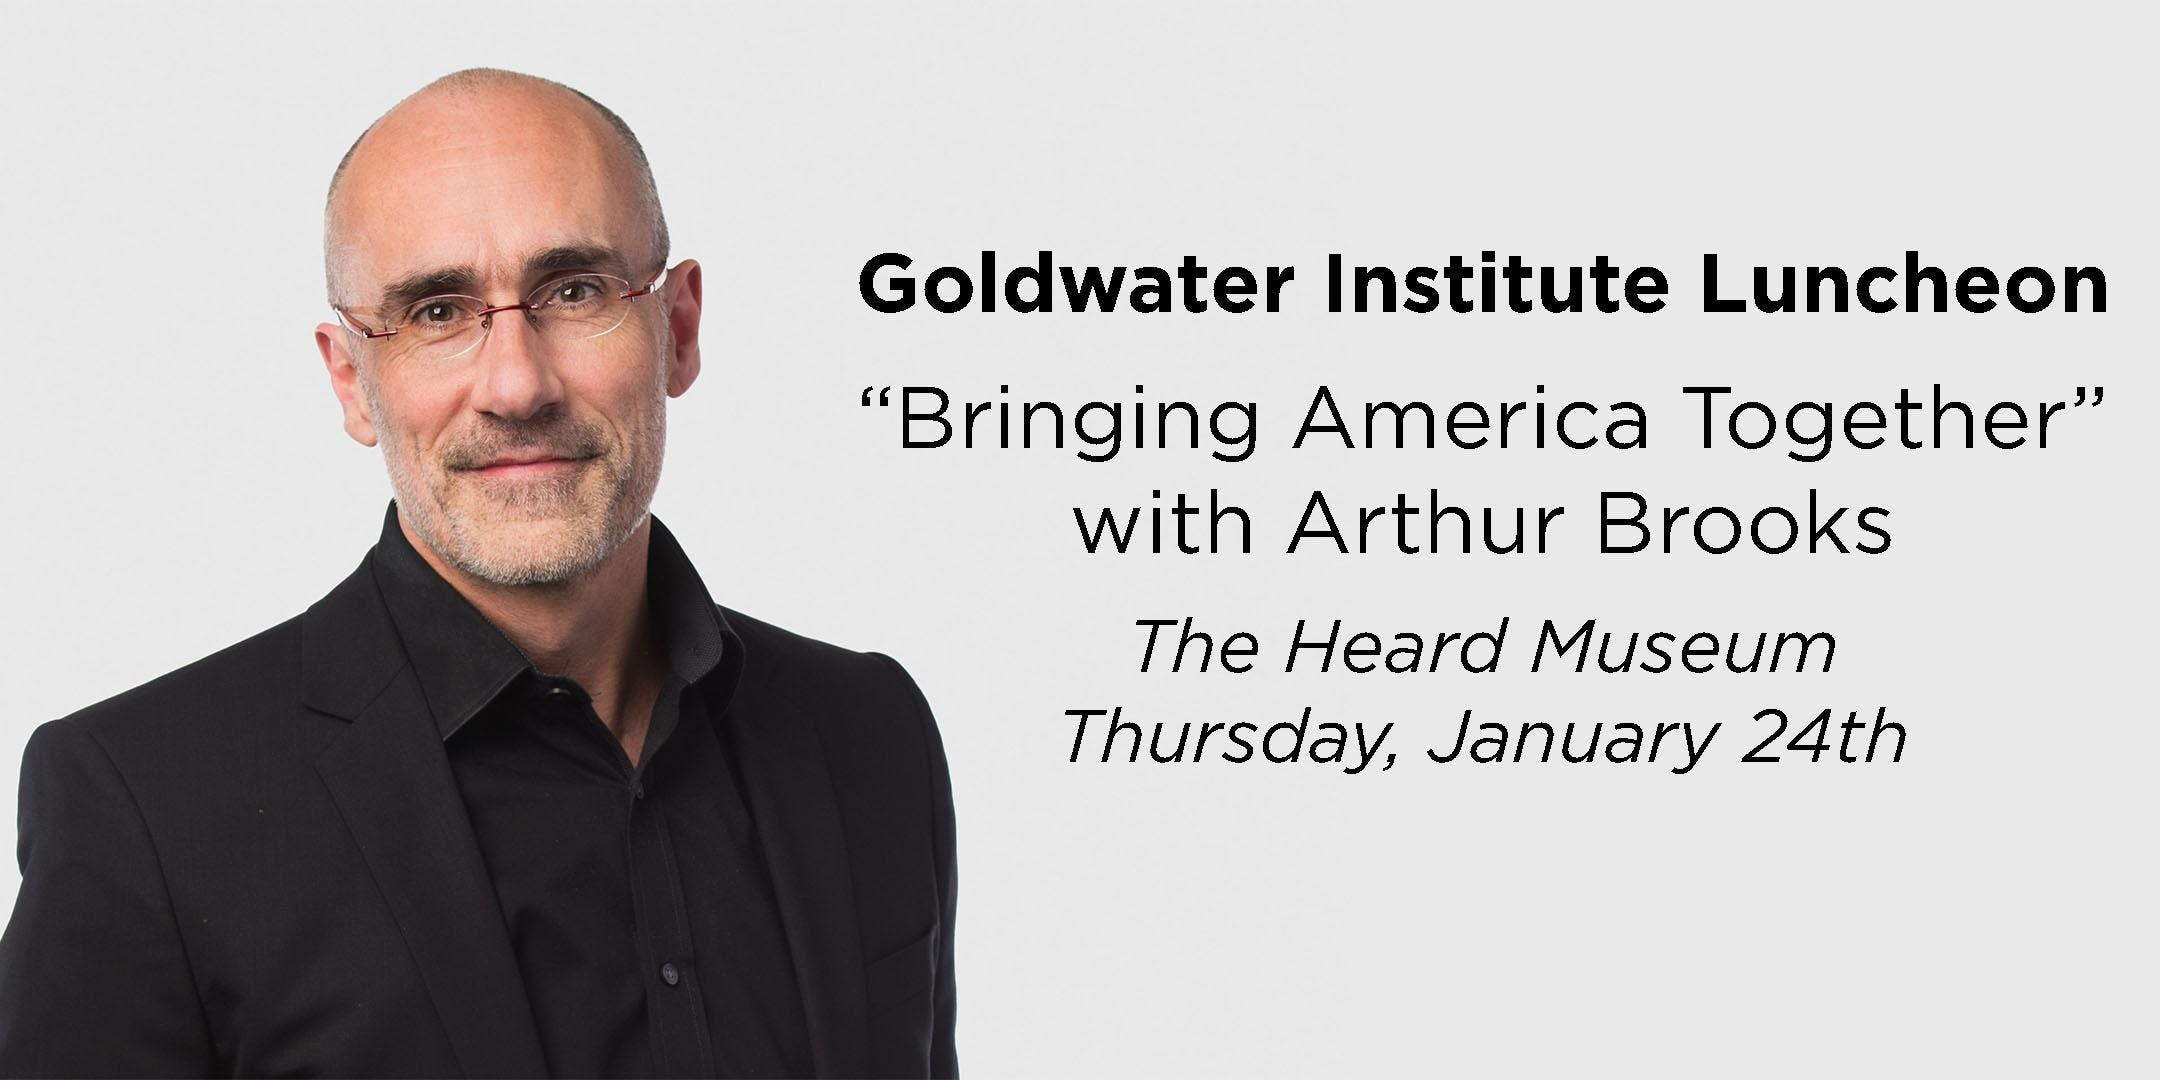 Join Us For a Lunch With Arthur Brooks!